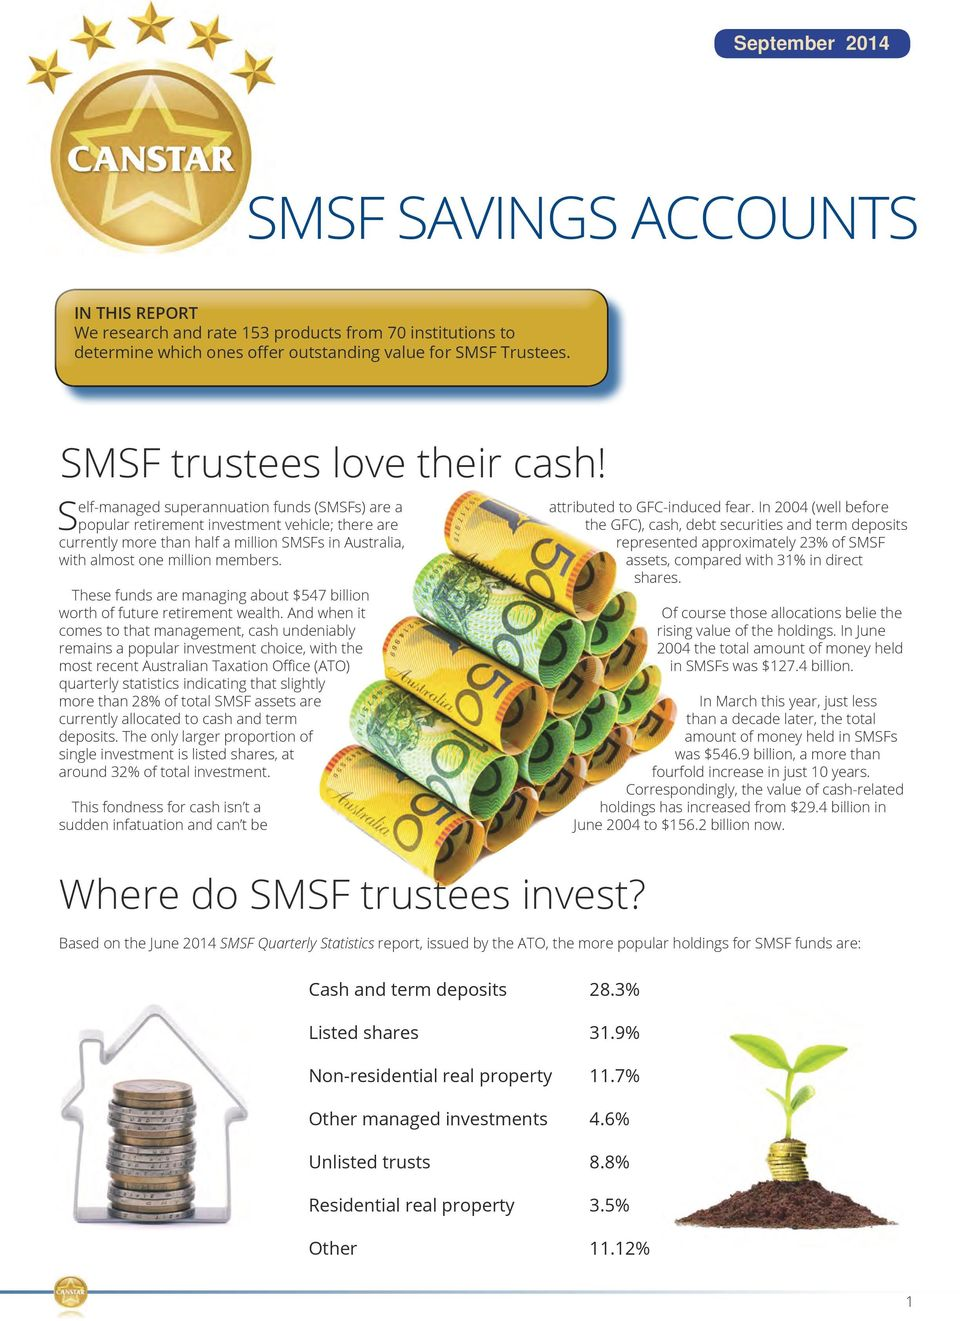 Self-managed superannuation funds (SMSFs) are a popular retirement investment vehicle; there are currently more than half a million SMSFs in Australia, with almost one million members.